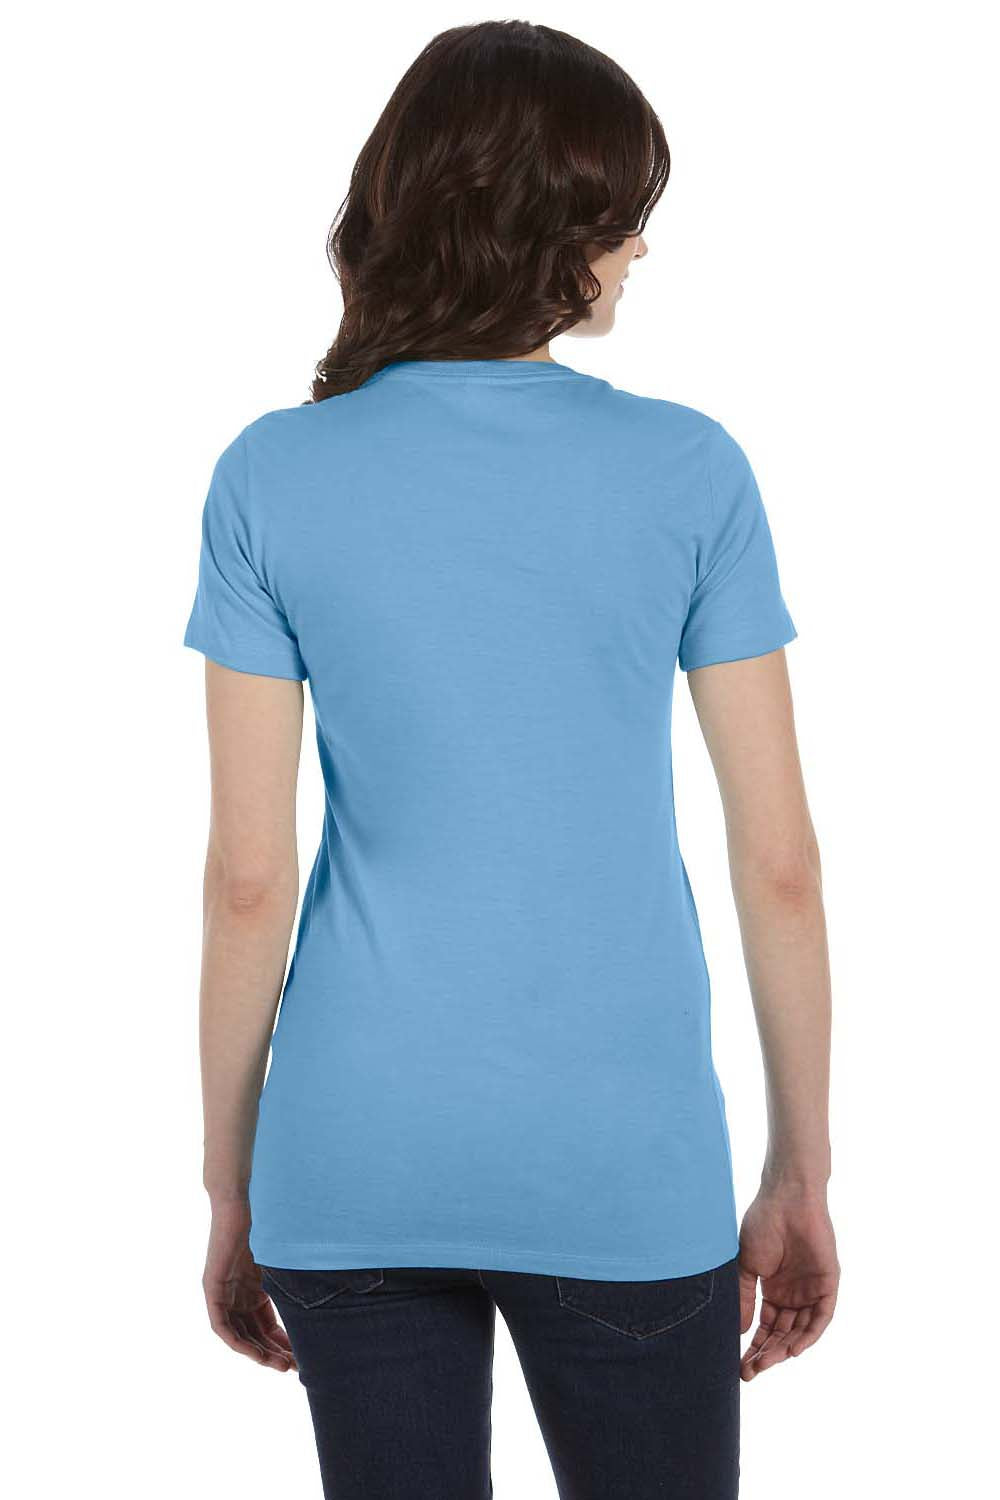 Bella + Canvas 6004 Womens The Favorite Short Sleeve Crewneck T-Shirt Ocean Blue Back